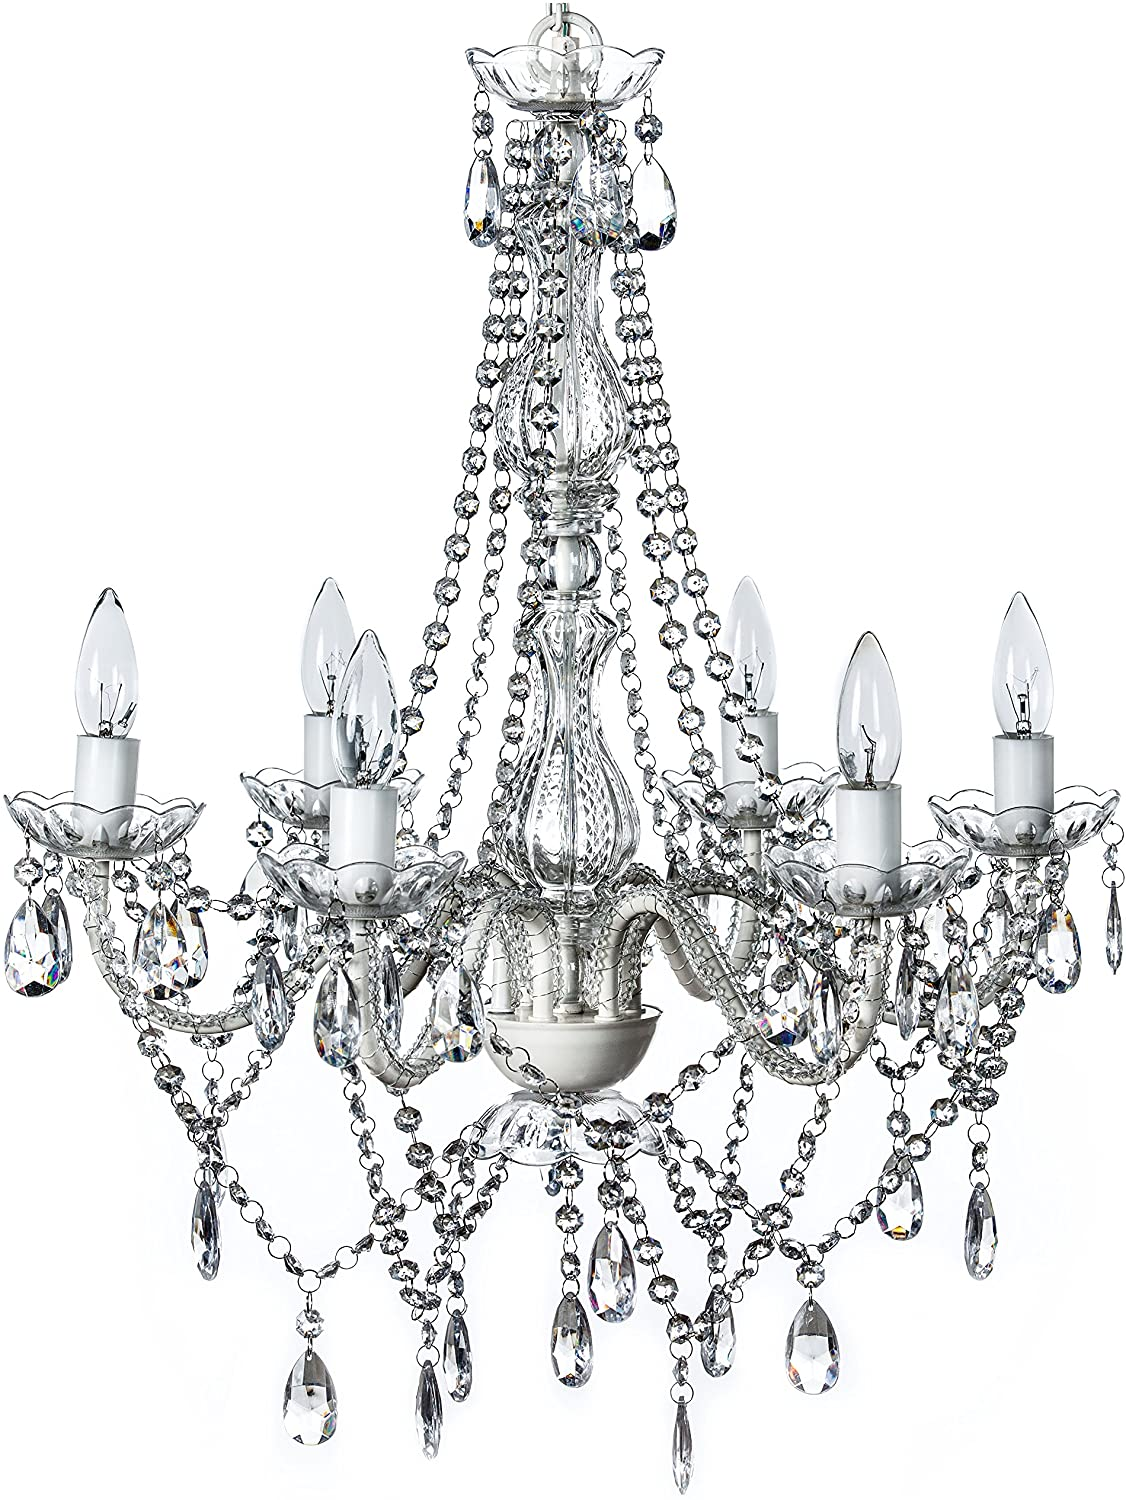 6  PRETTY PINK GLASS CHANDELIER DROPS 6 INCHES LONG